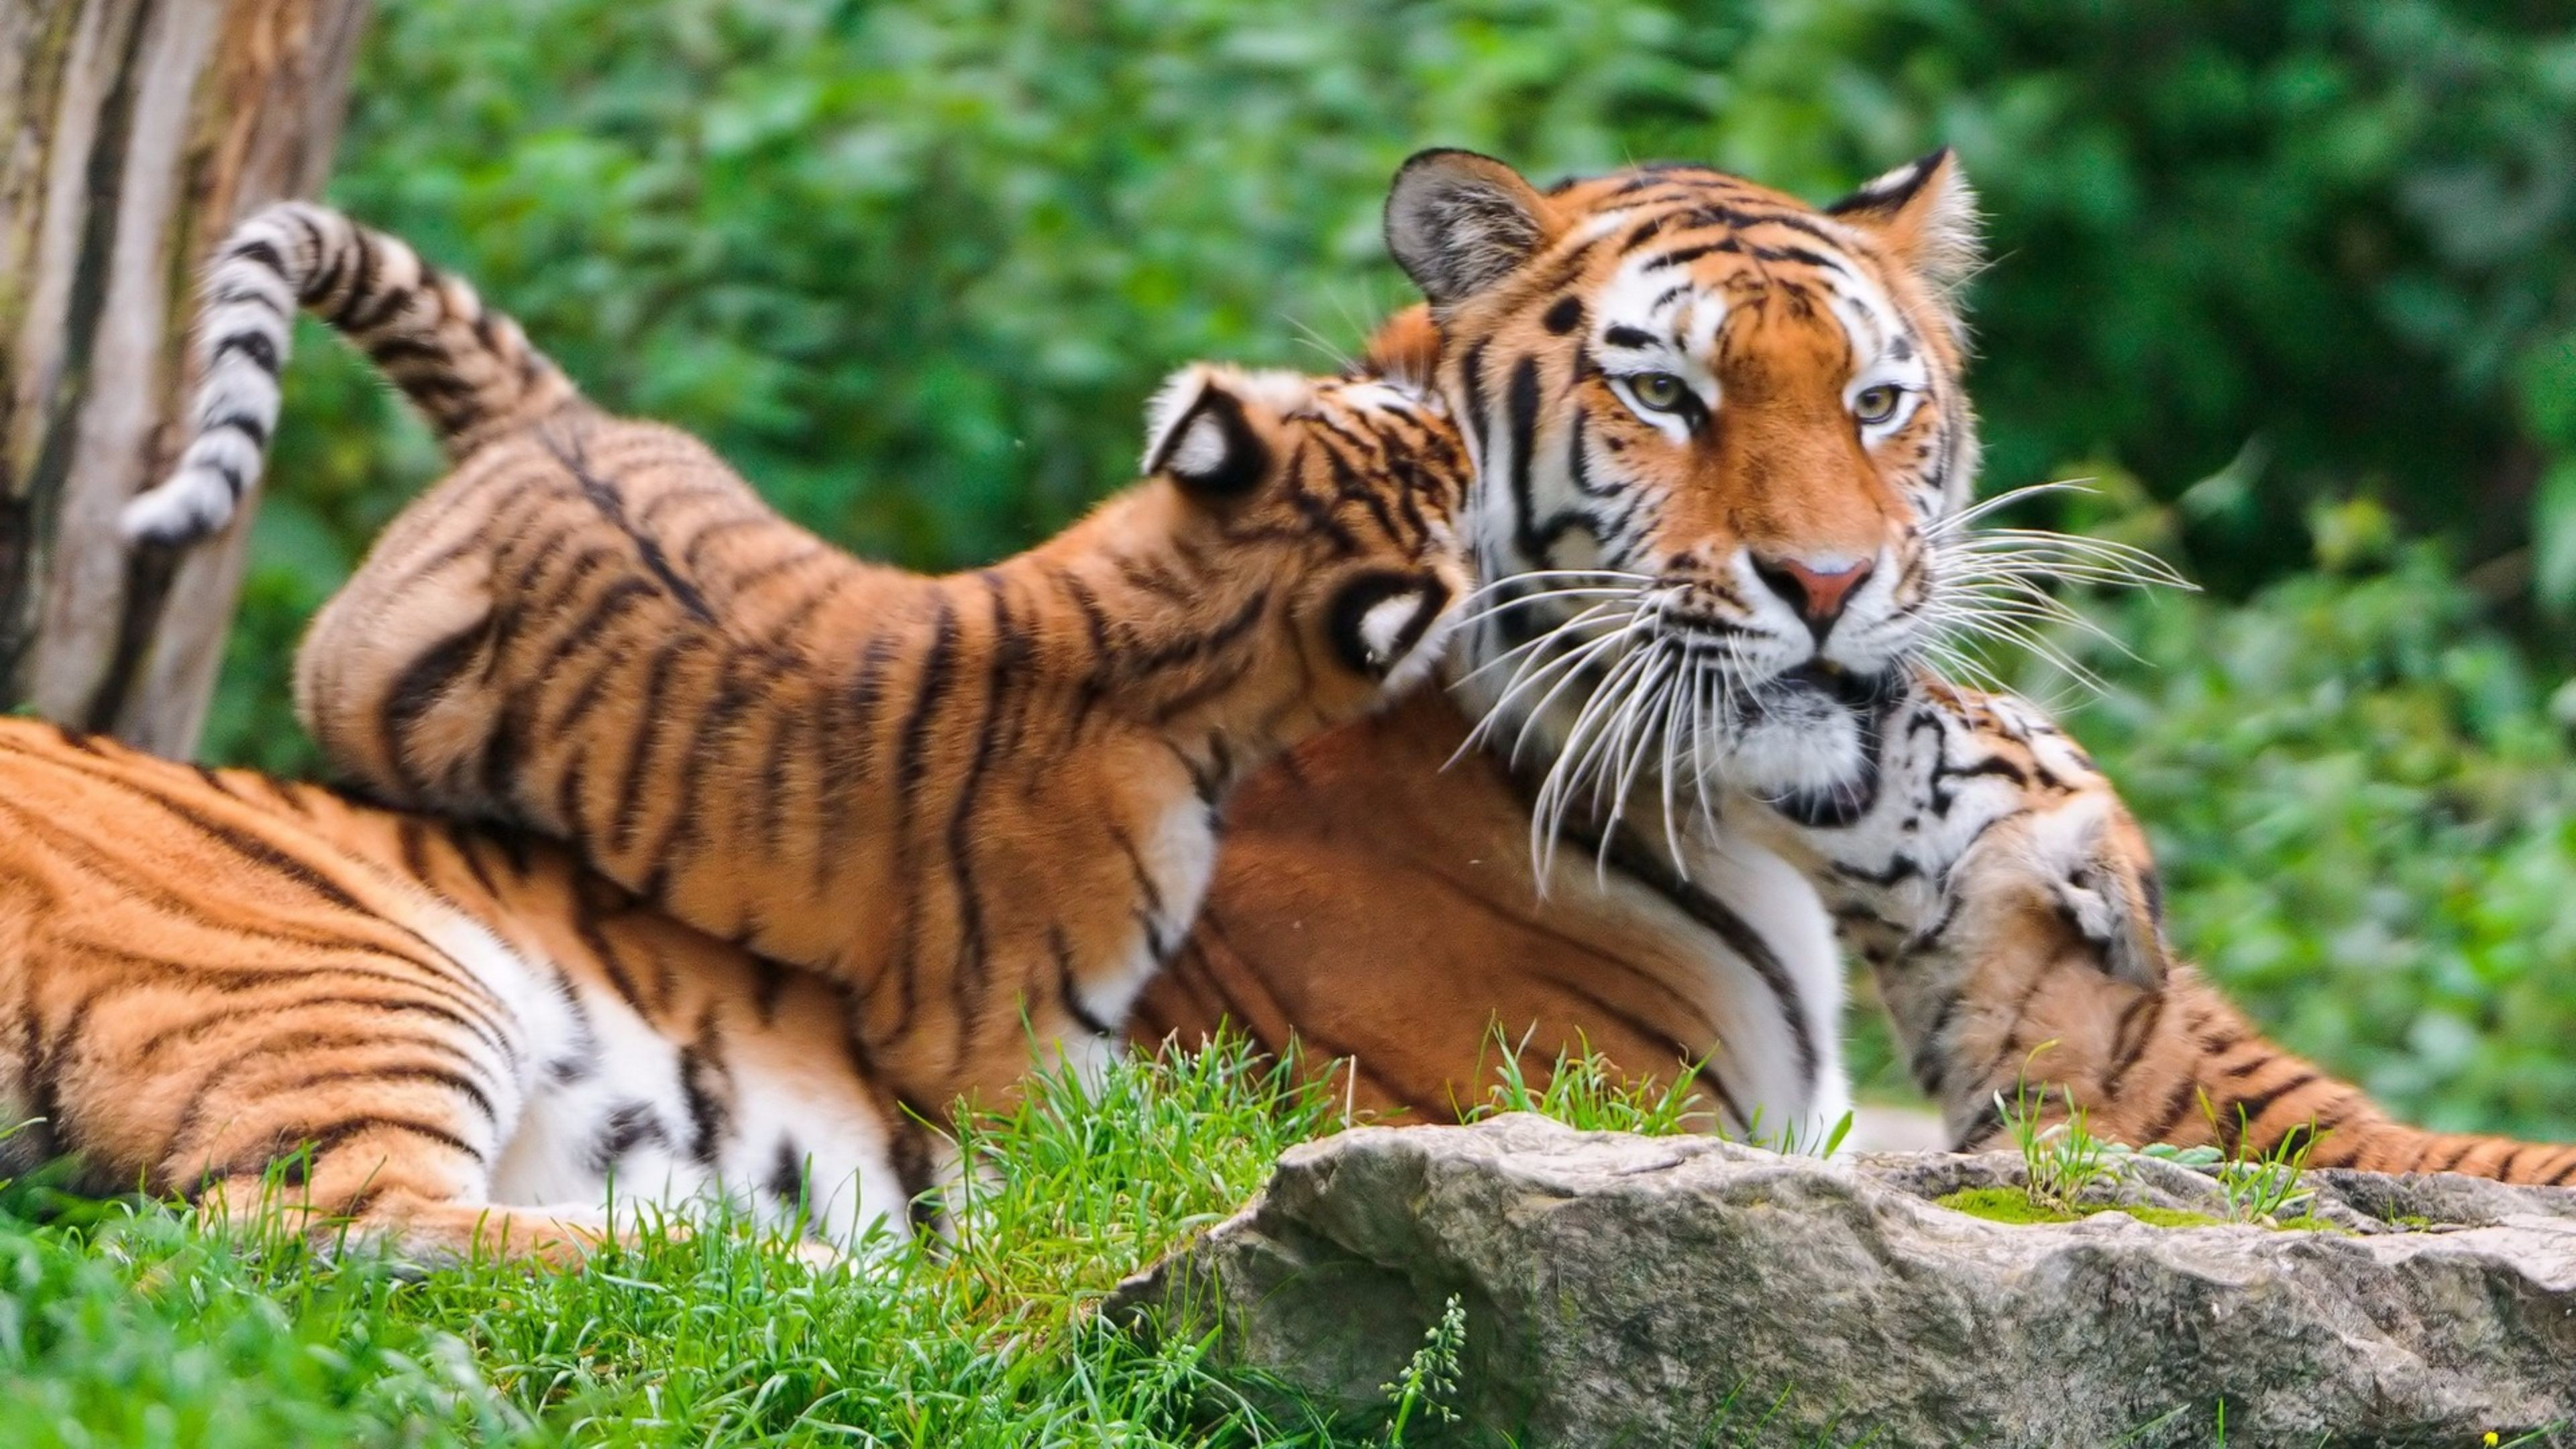 3840x2160 tiger cubby Cats Animals Background Wallpapers on Desktop